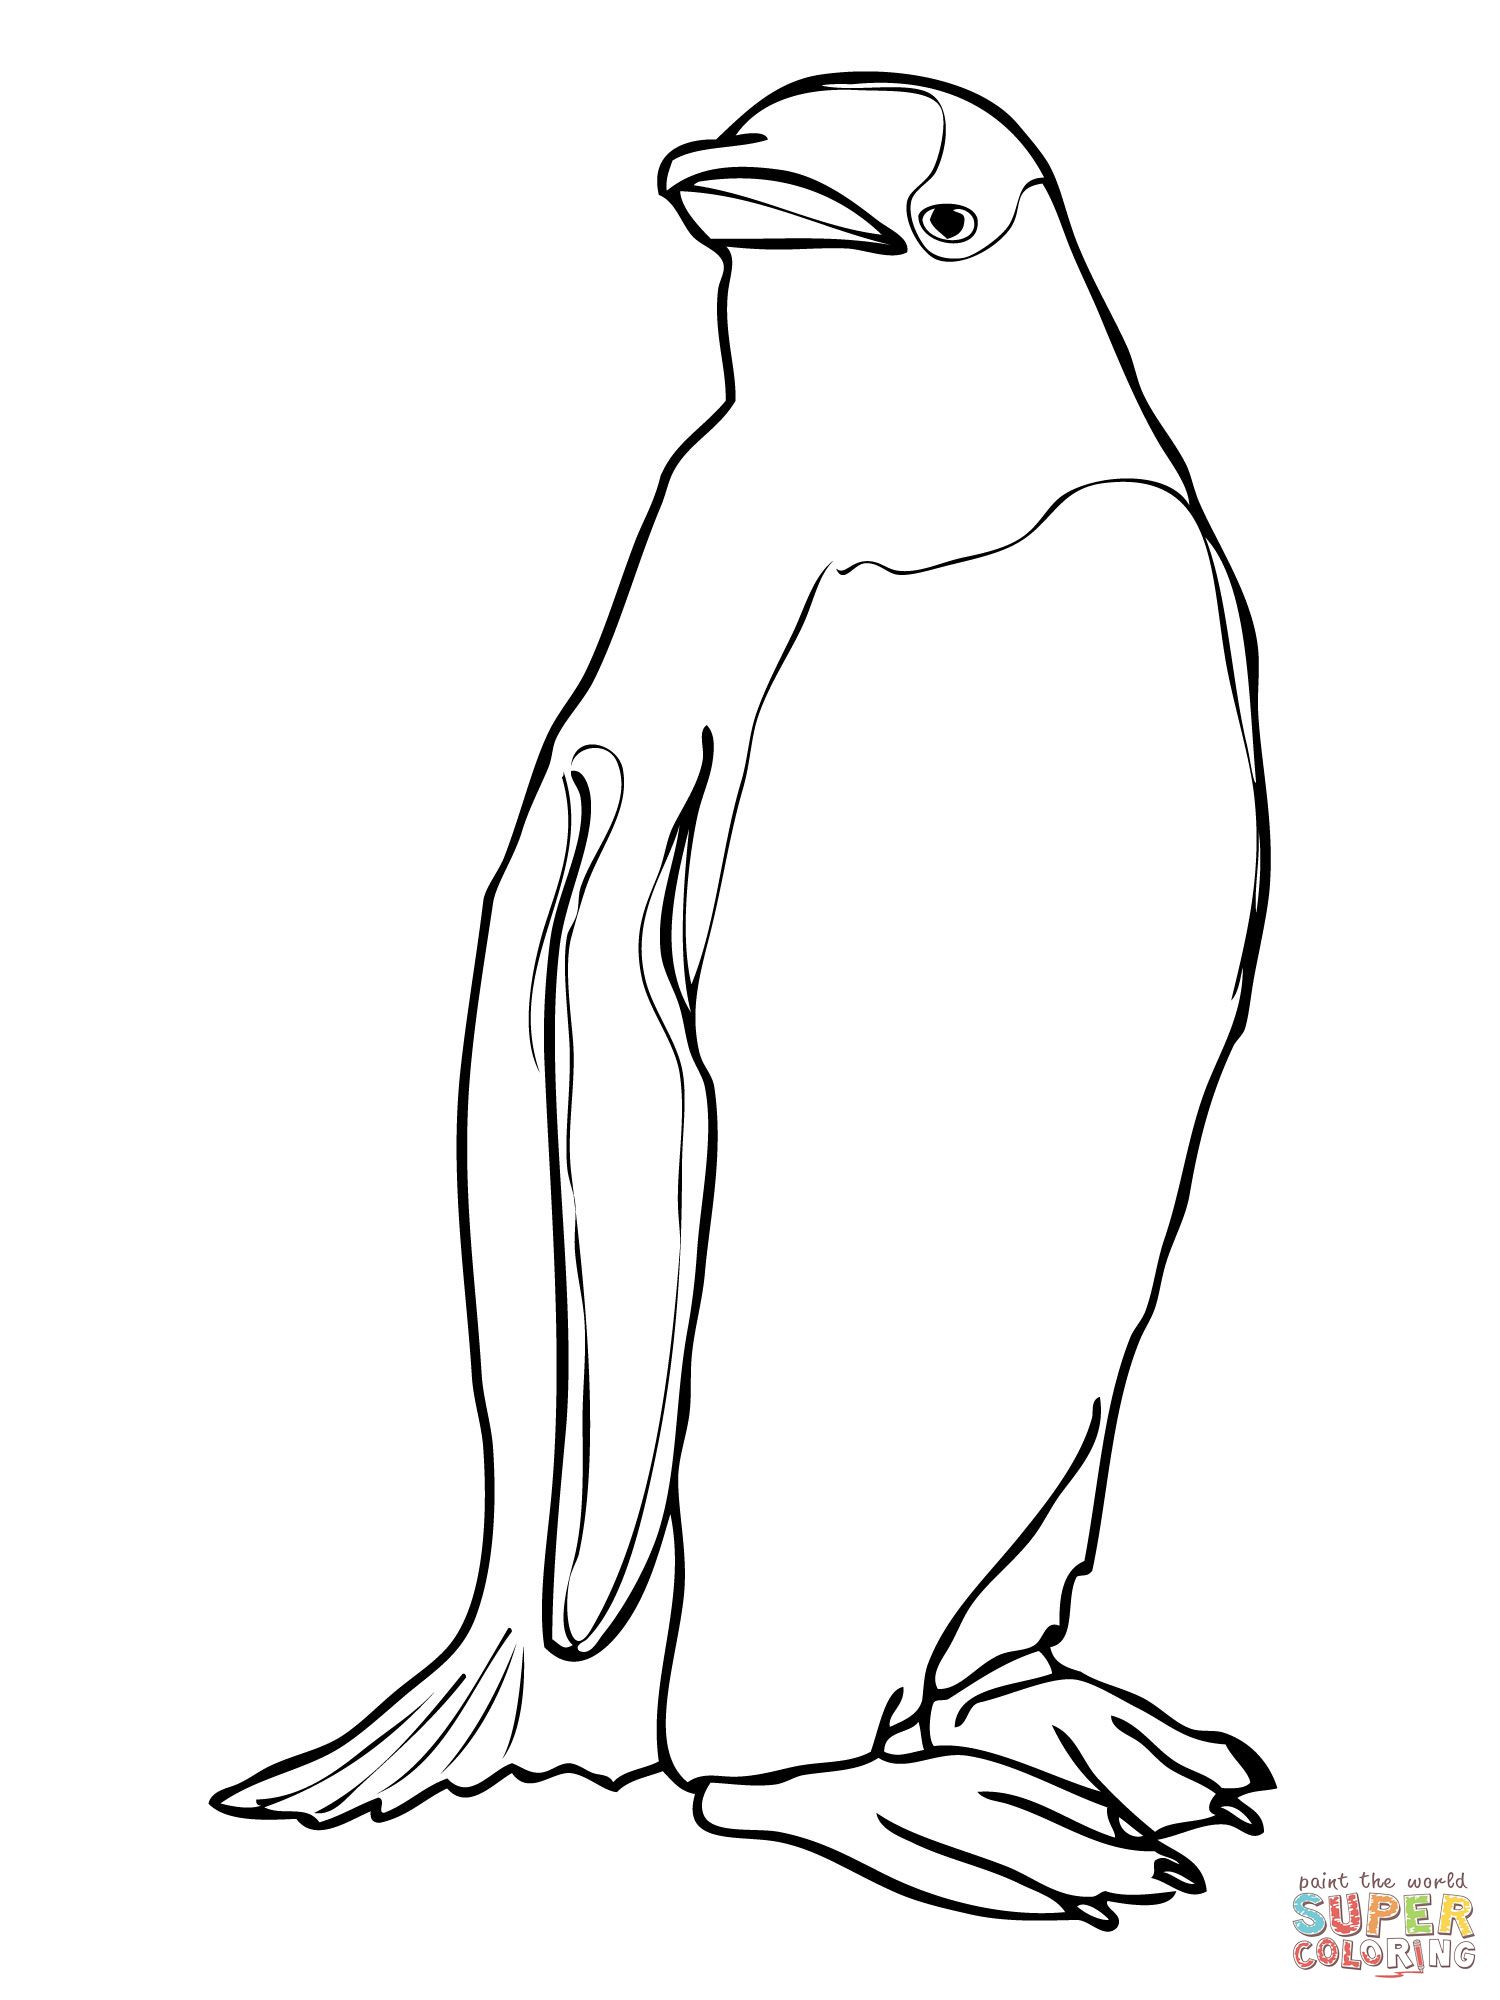 Pin On Penguins